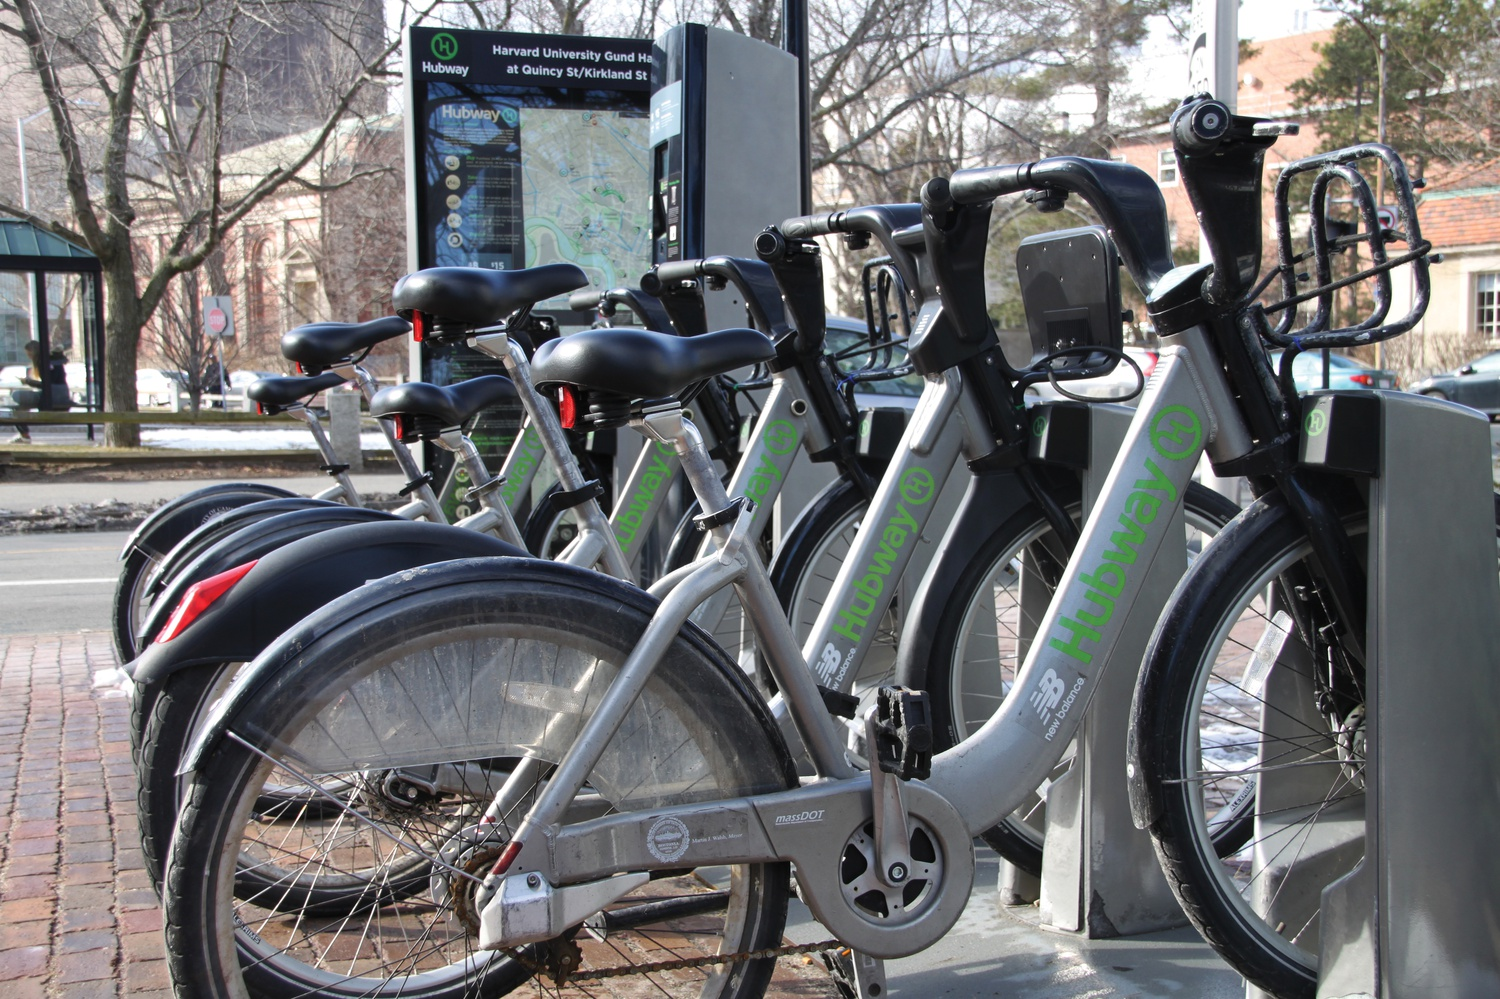 Located right outside Gund Hall of Harvard's Graduate School of Design, this Hubway Station is just one of the many in the Boston area.